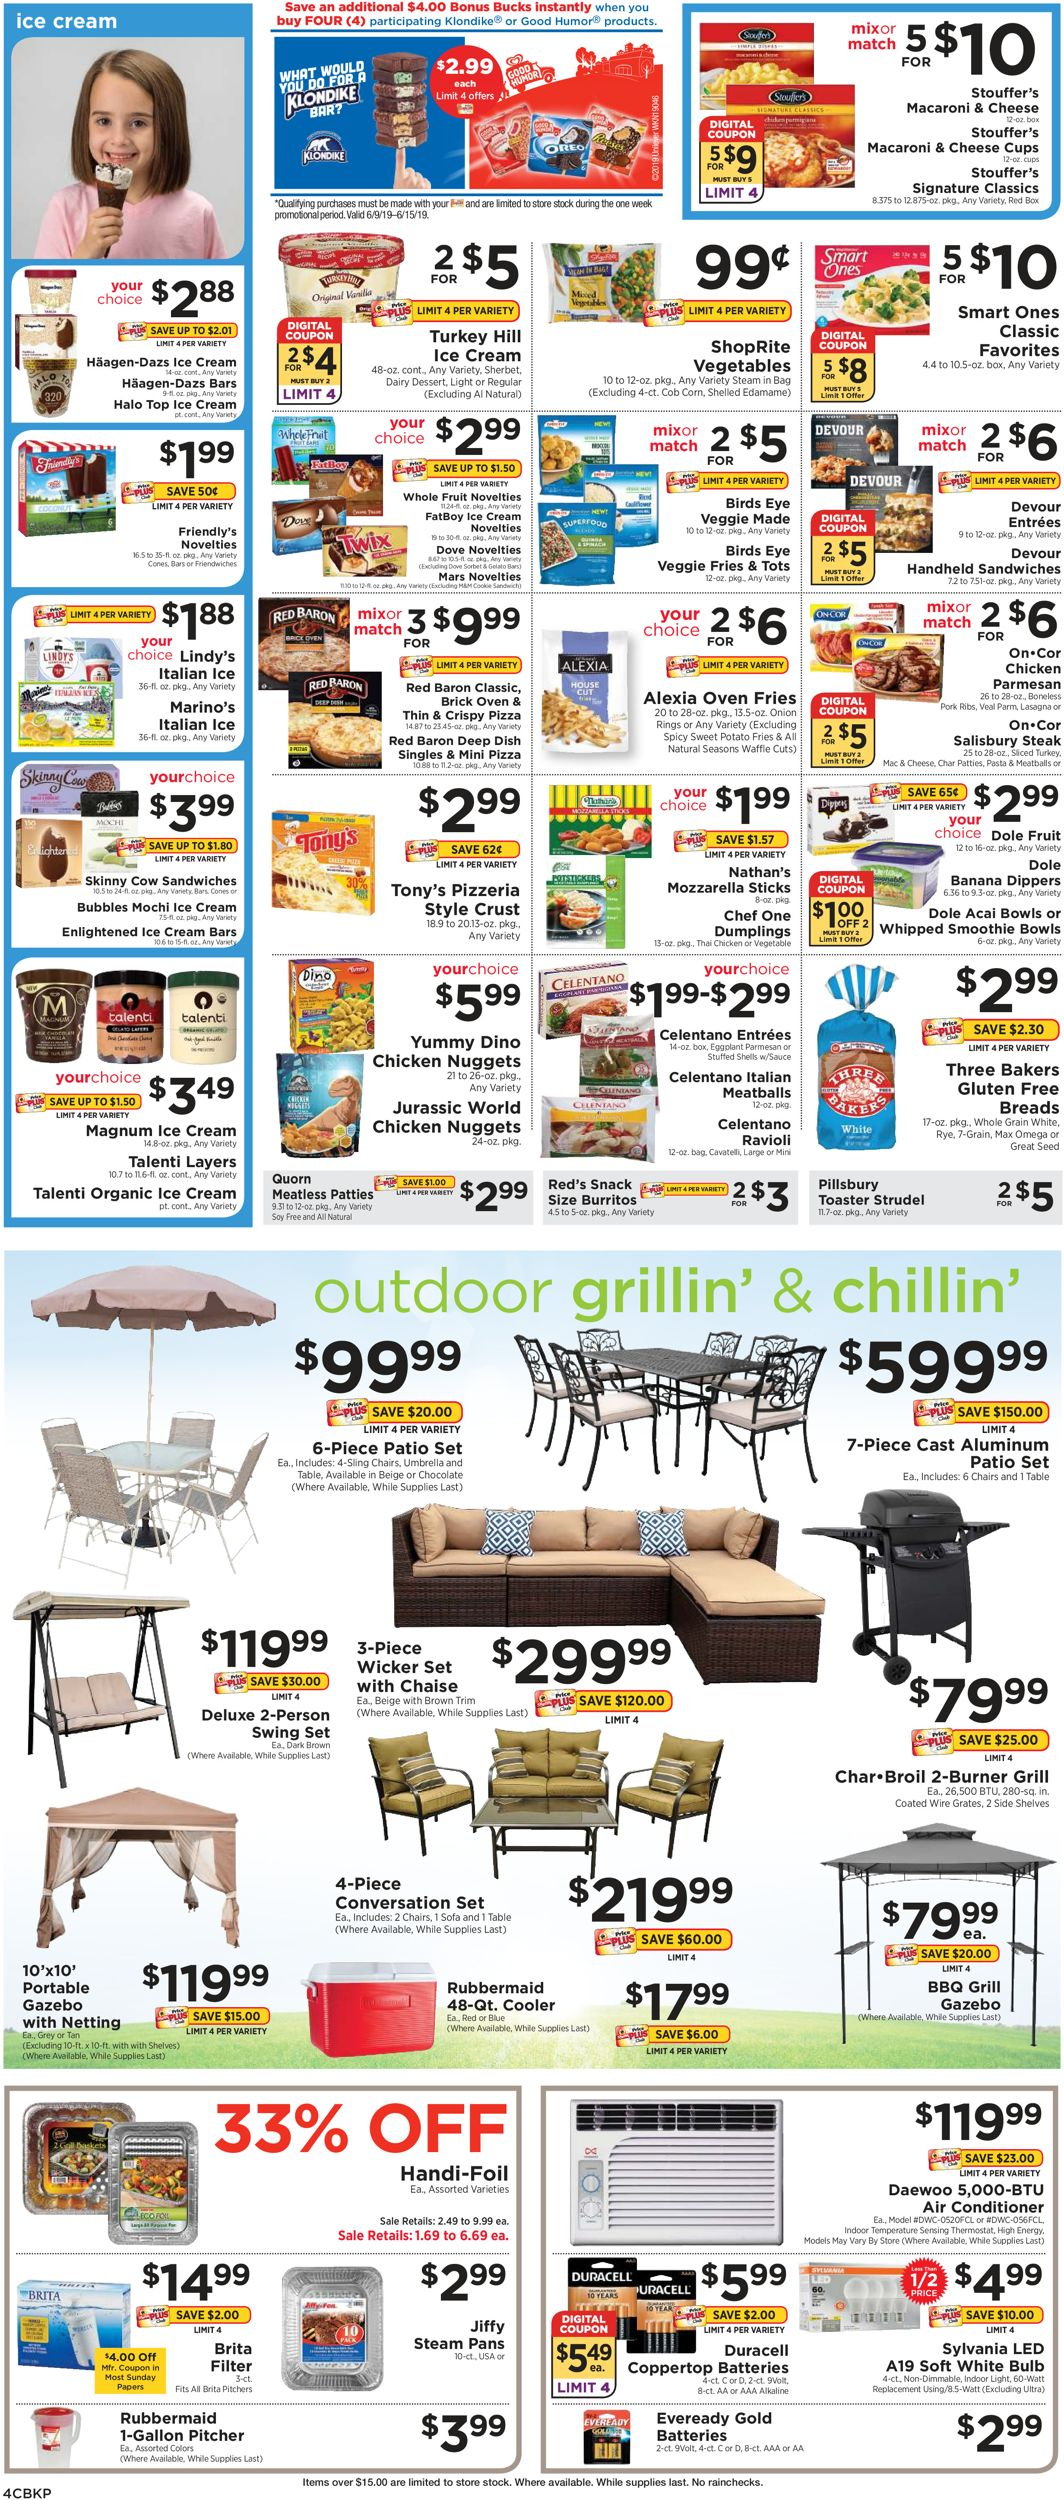 ShopRite Current weekly ad 06/09 - 06/15/2019 [4] - weekly-ad-24.com